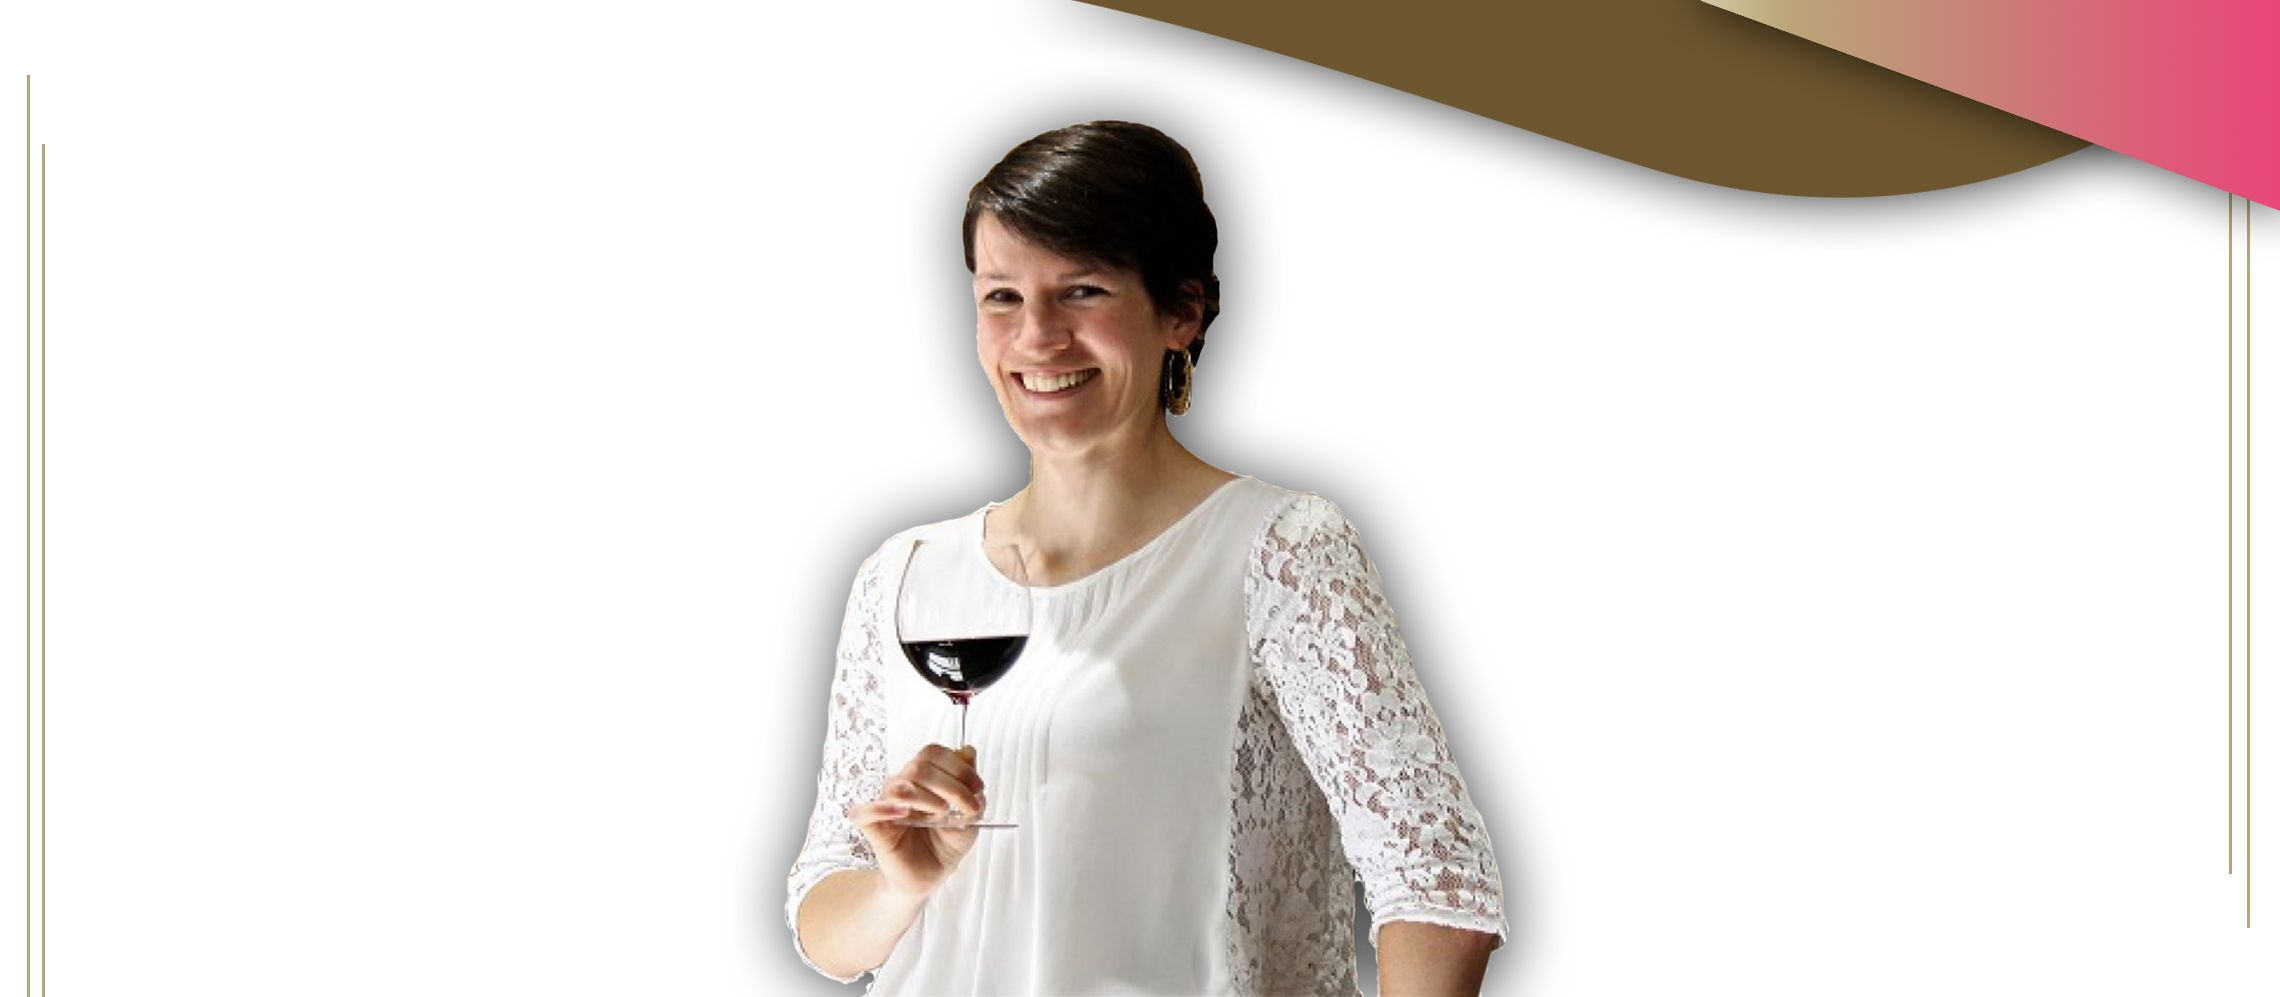 Photo for: Barbara Drew MW - Events Manager, Master of Wine at Berry Bros. & Rudd Ltd